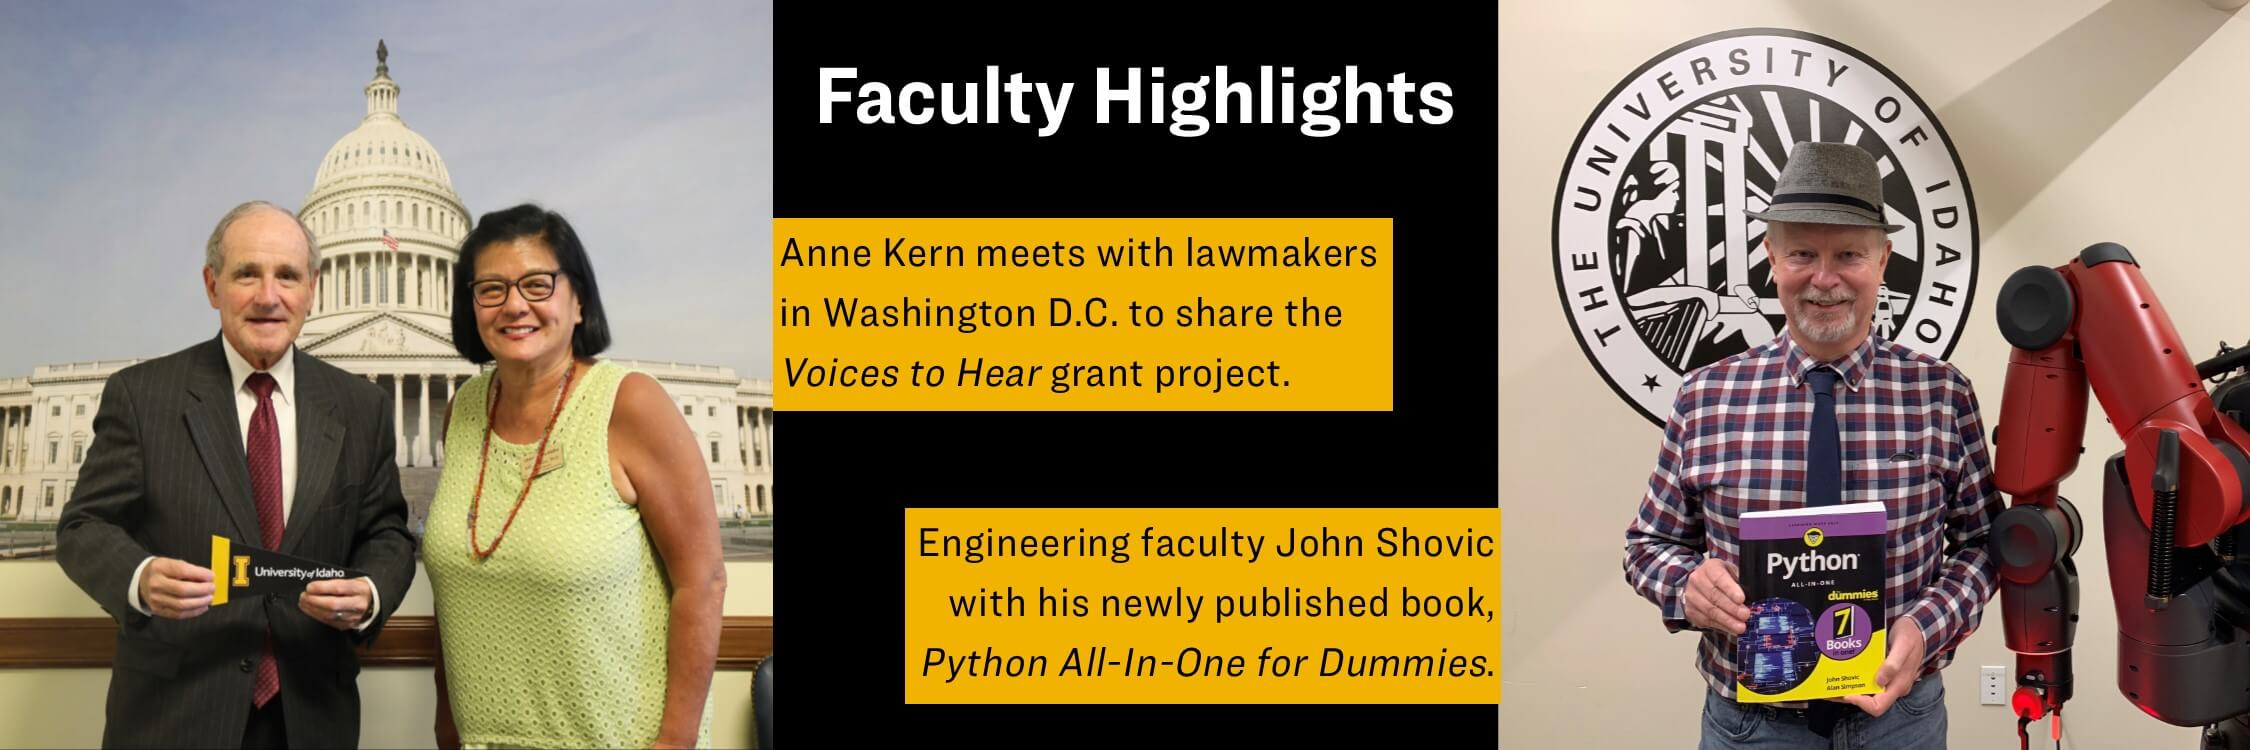 Anne Kern meets with lawmakers in Washington D.C. to share the Voices to Hear grant project. Engineering faculty John Shovic with his newly published book Pythin All-In-One for Dummies.